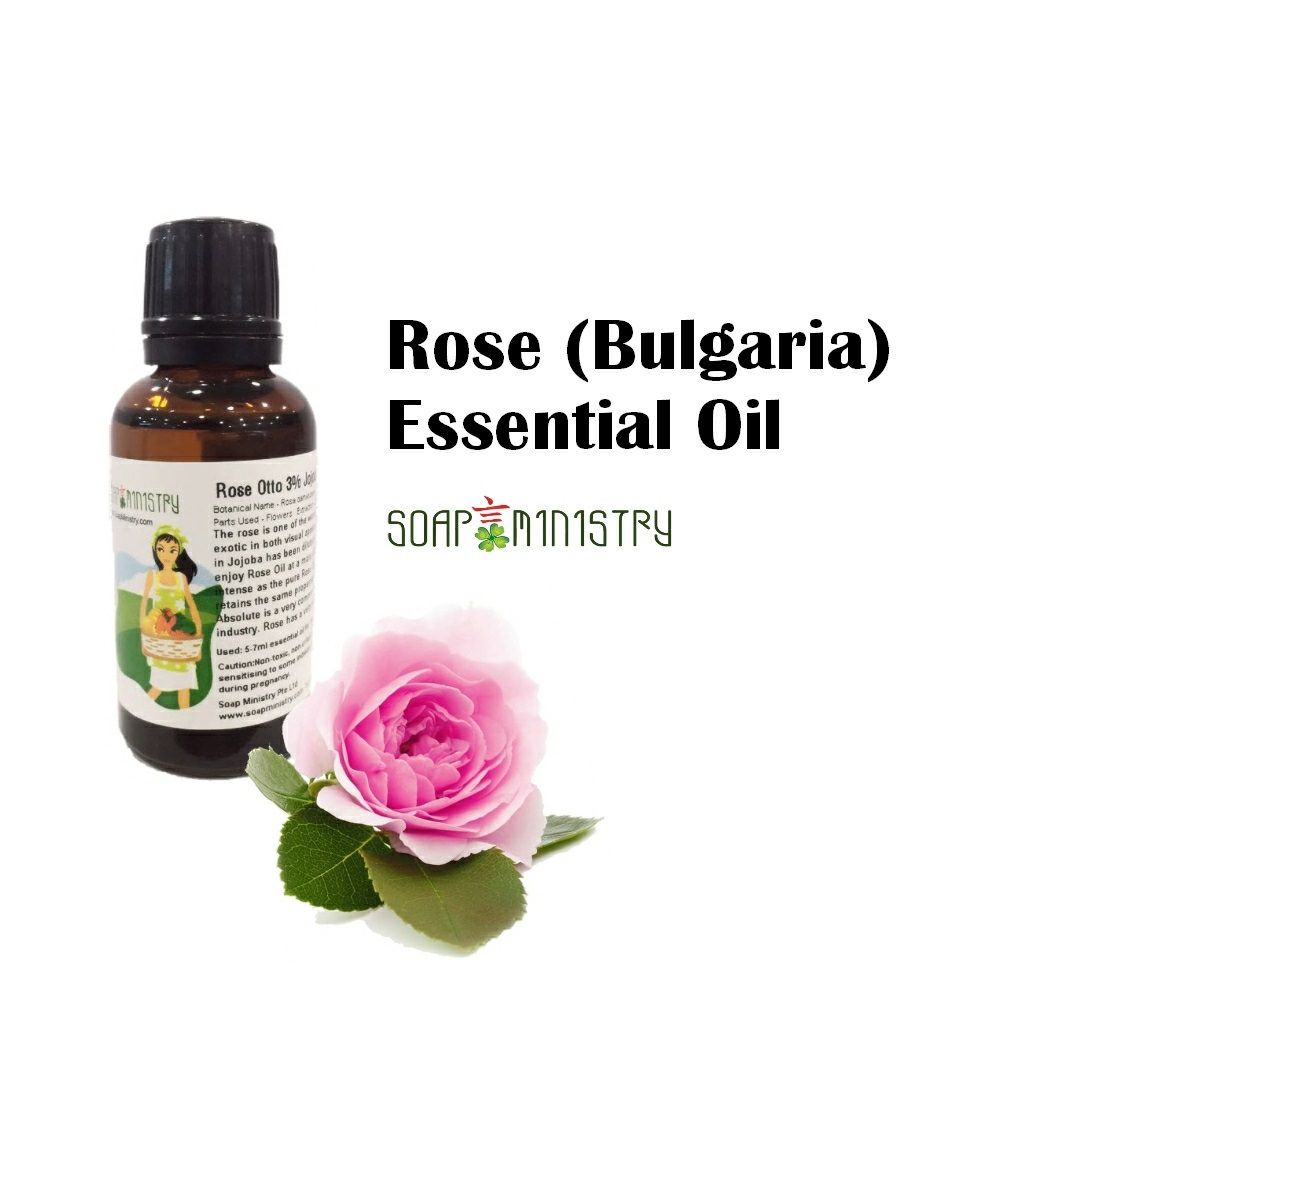 Rose Otto 3% Jojoba Essential Oil 100ml